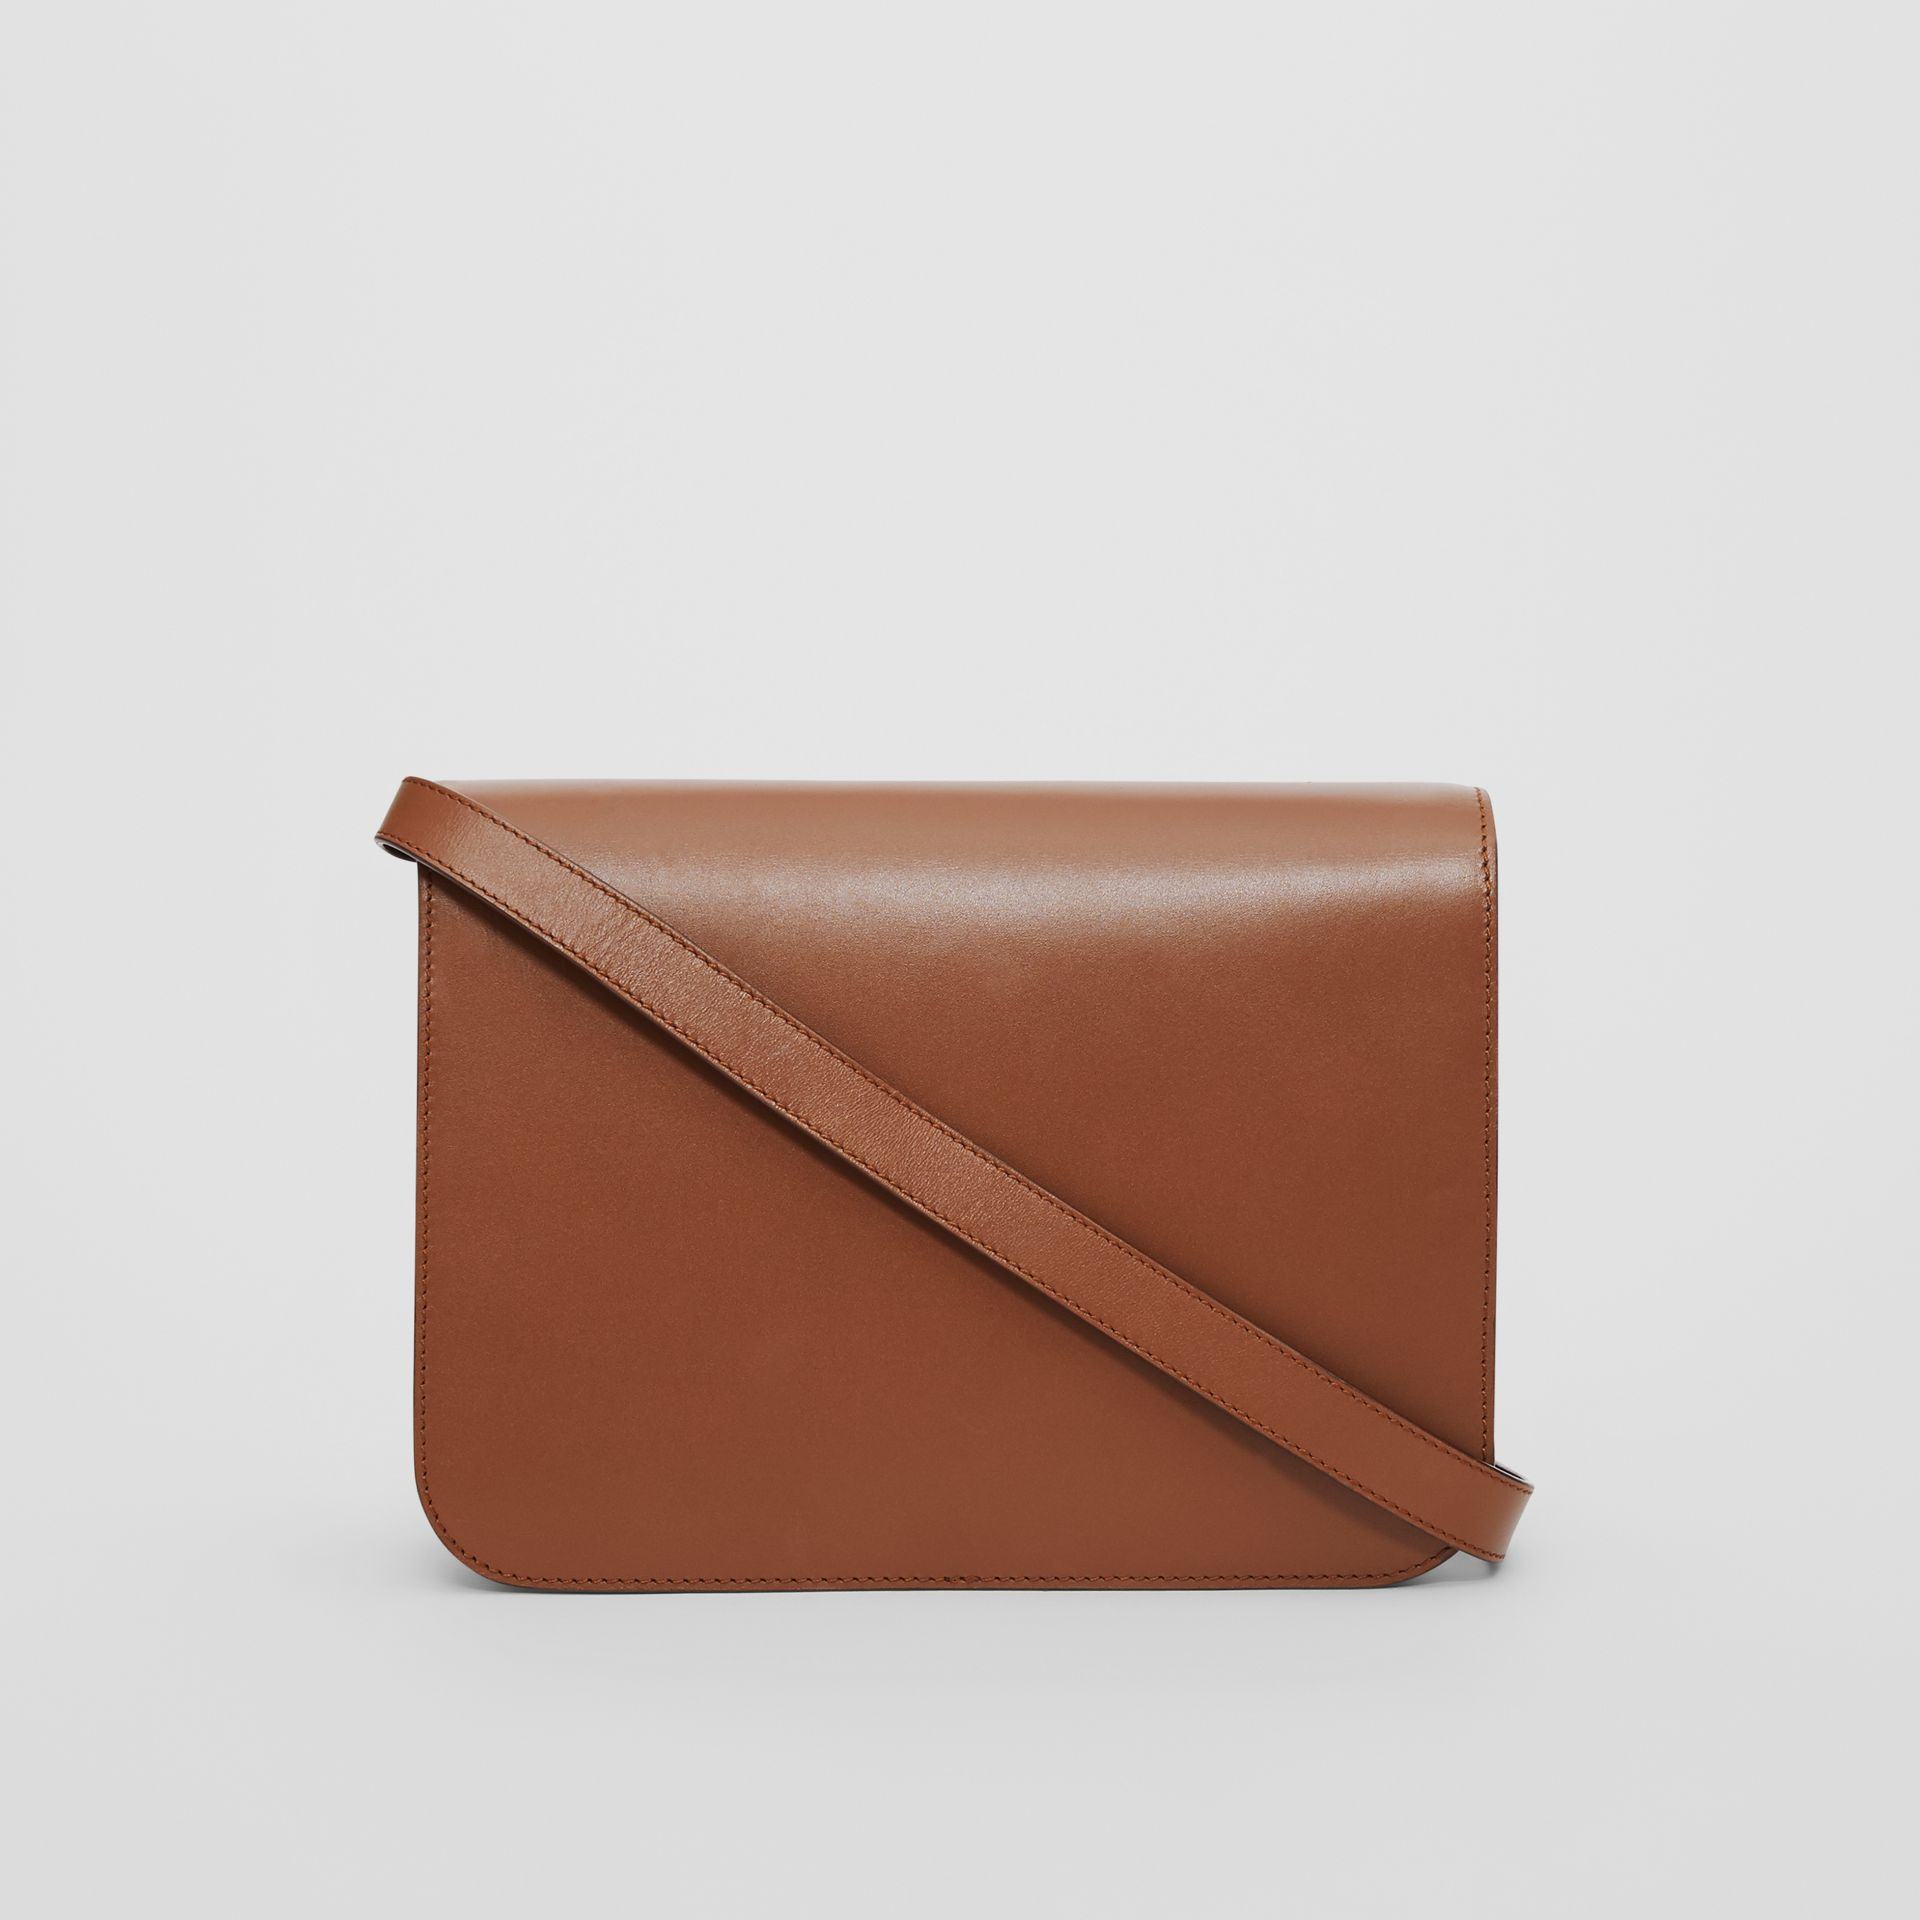 Medium Leather TB Bag in Malt Brown - Women | Burberry - gallery image 7